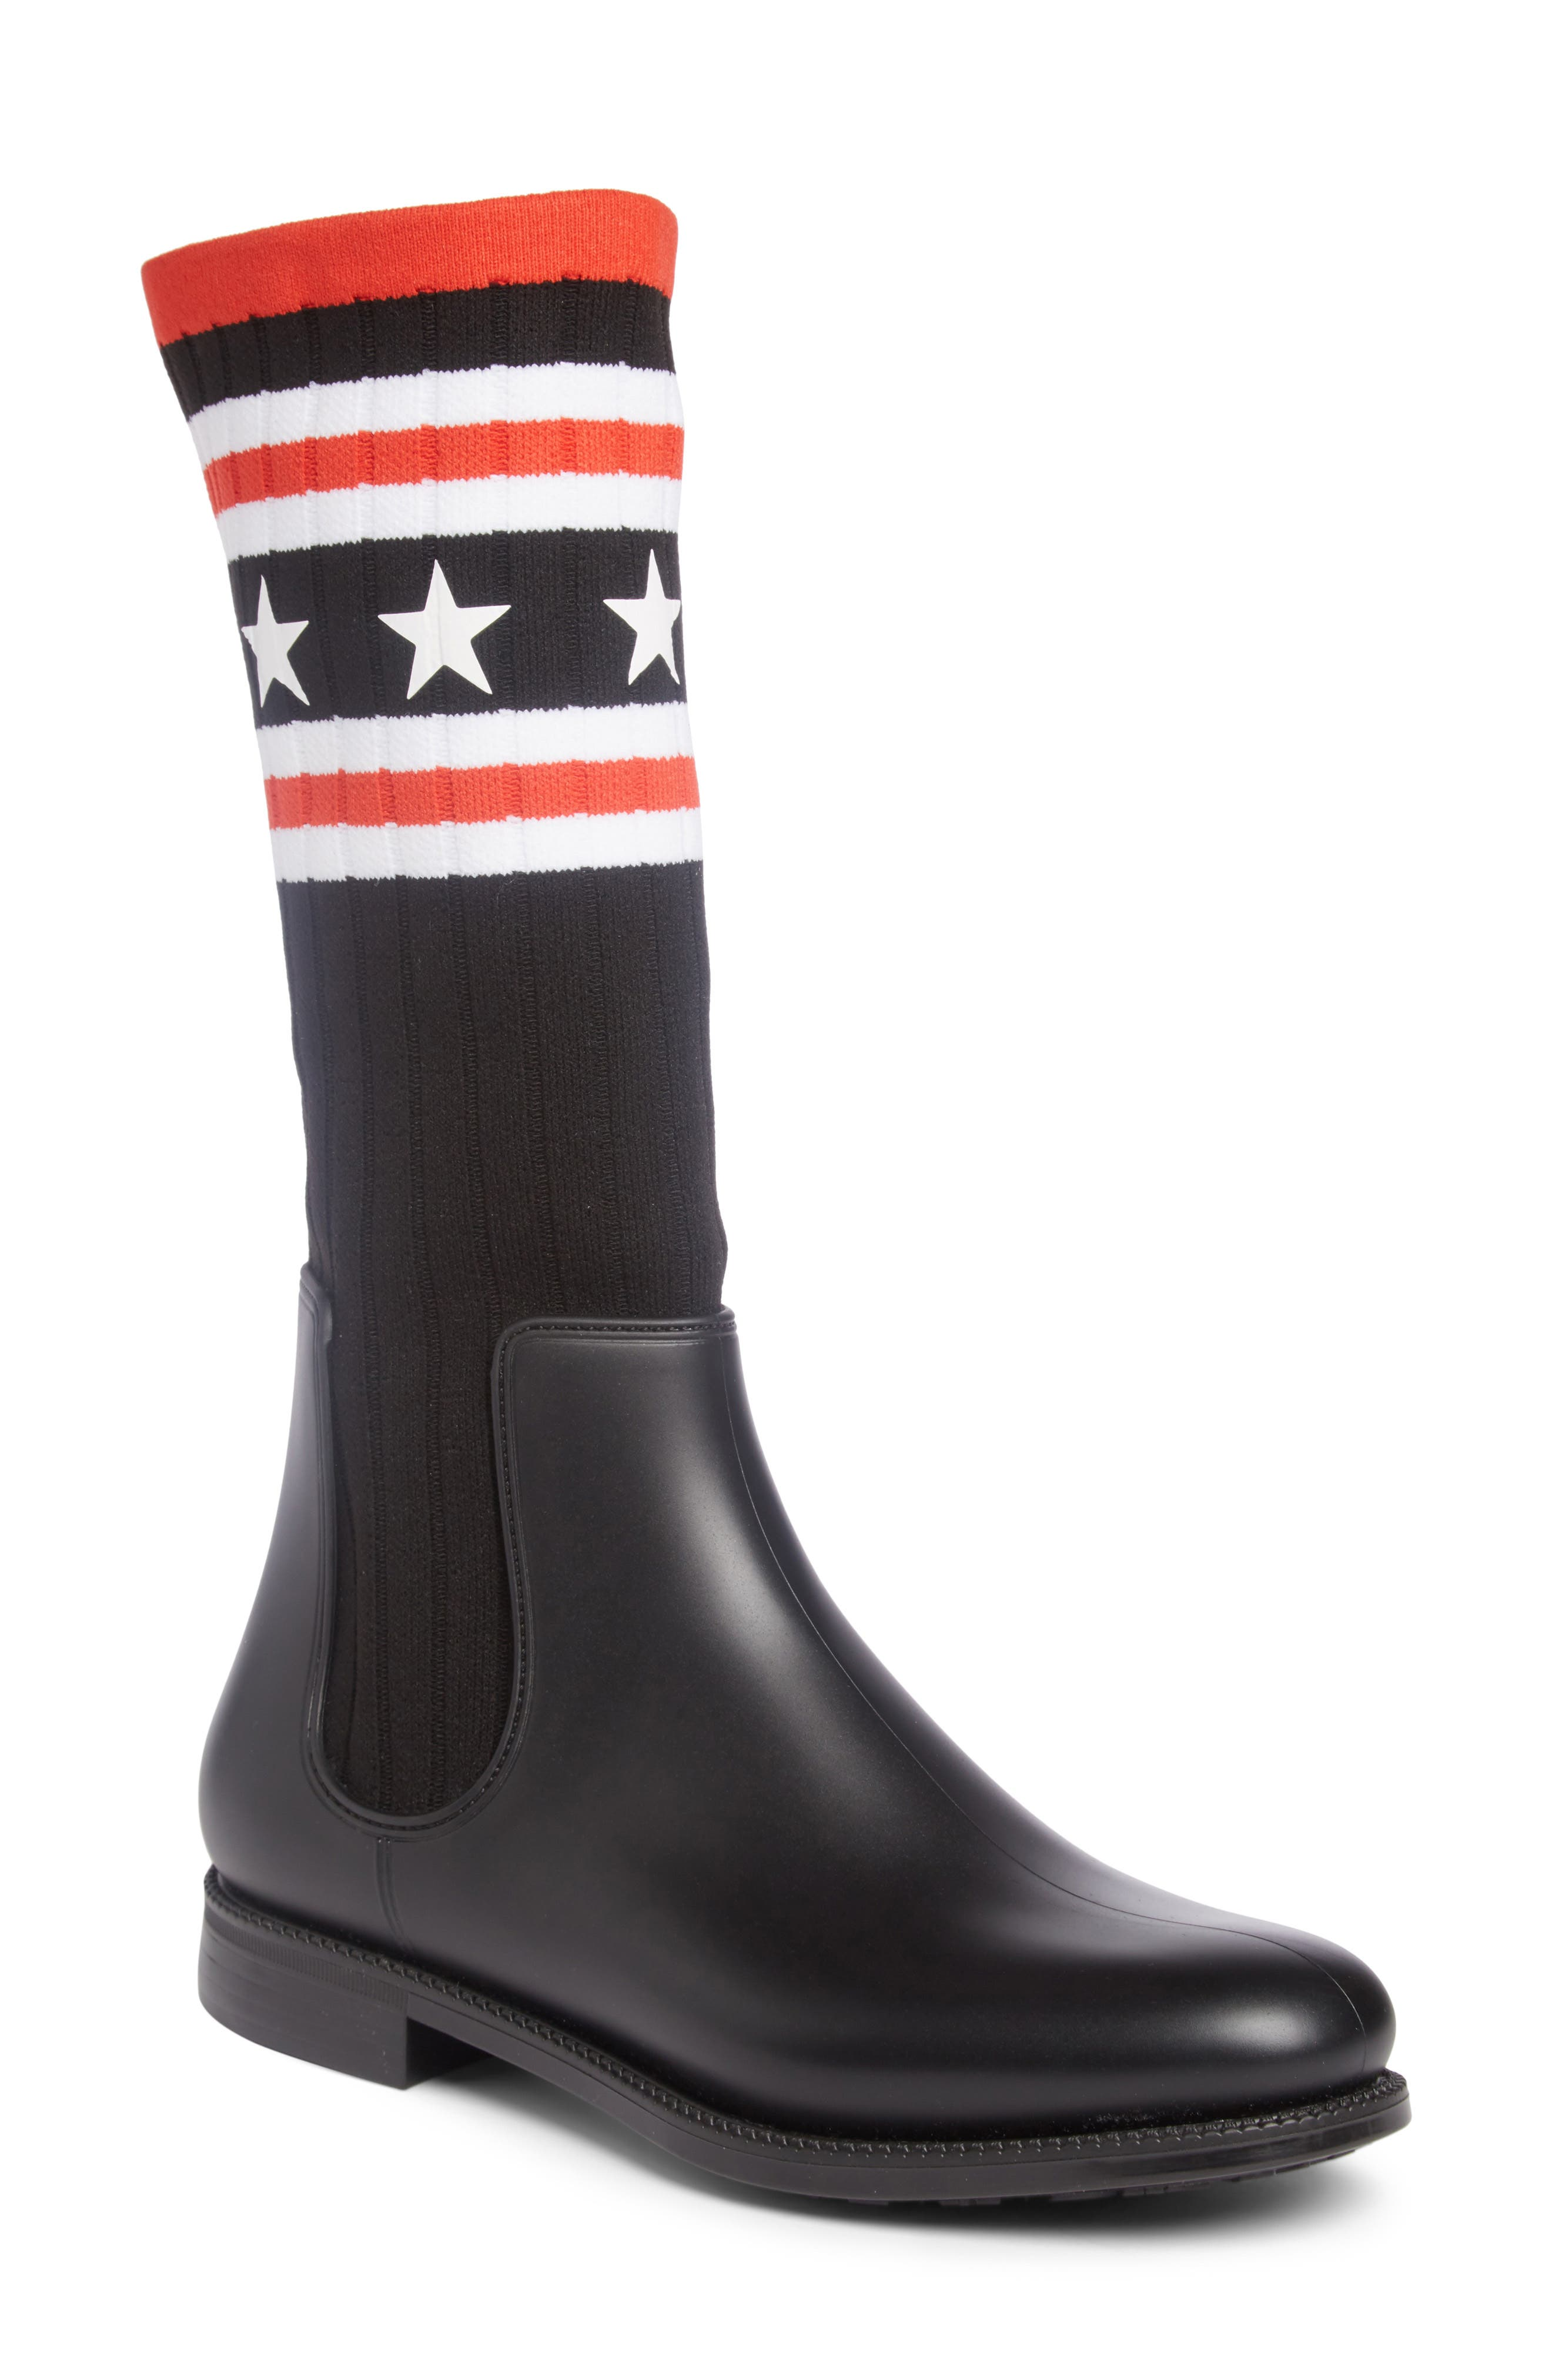 Alternate Image 1 Selected - Givenchy Storm Chelsea Sock Boot (Women)